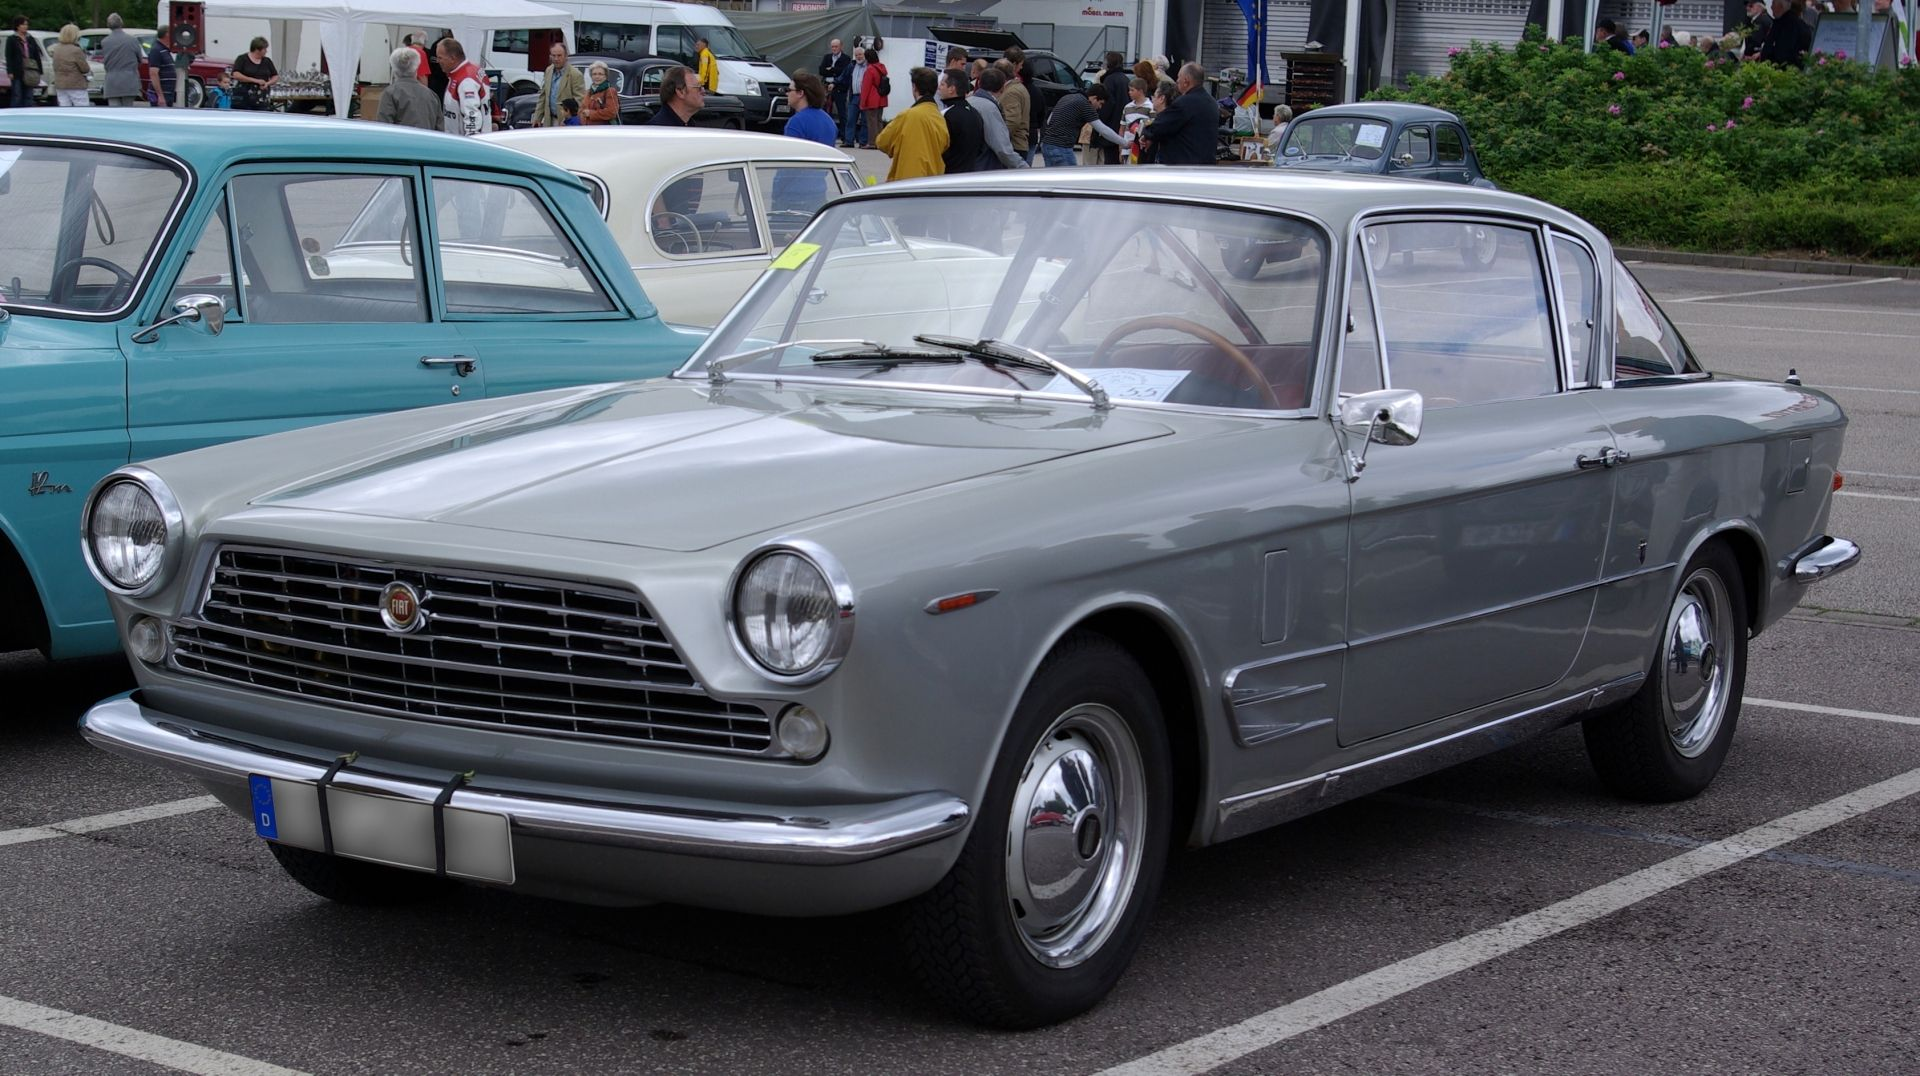 Fiat 2300 S Coupe Abarth Used Daewoo Cars